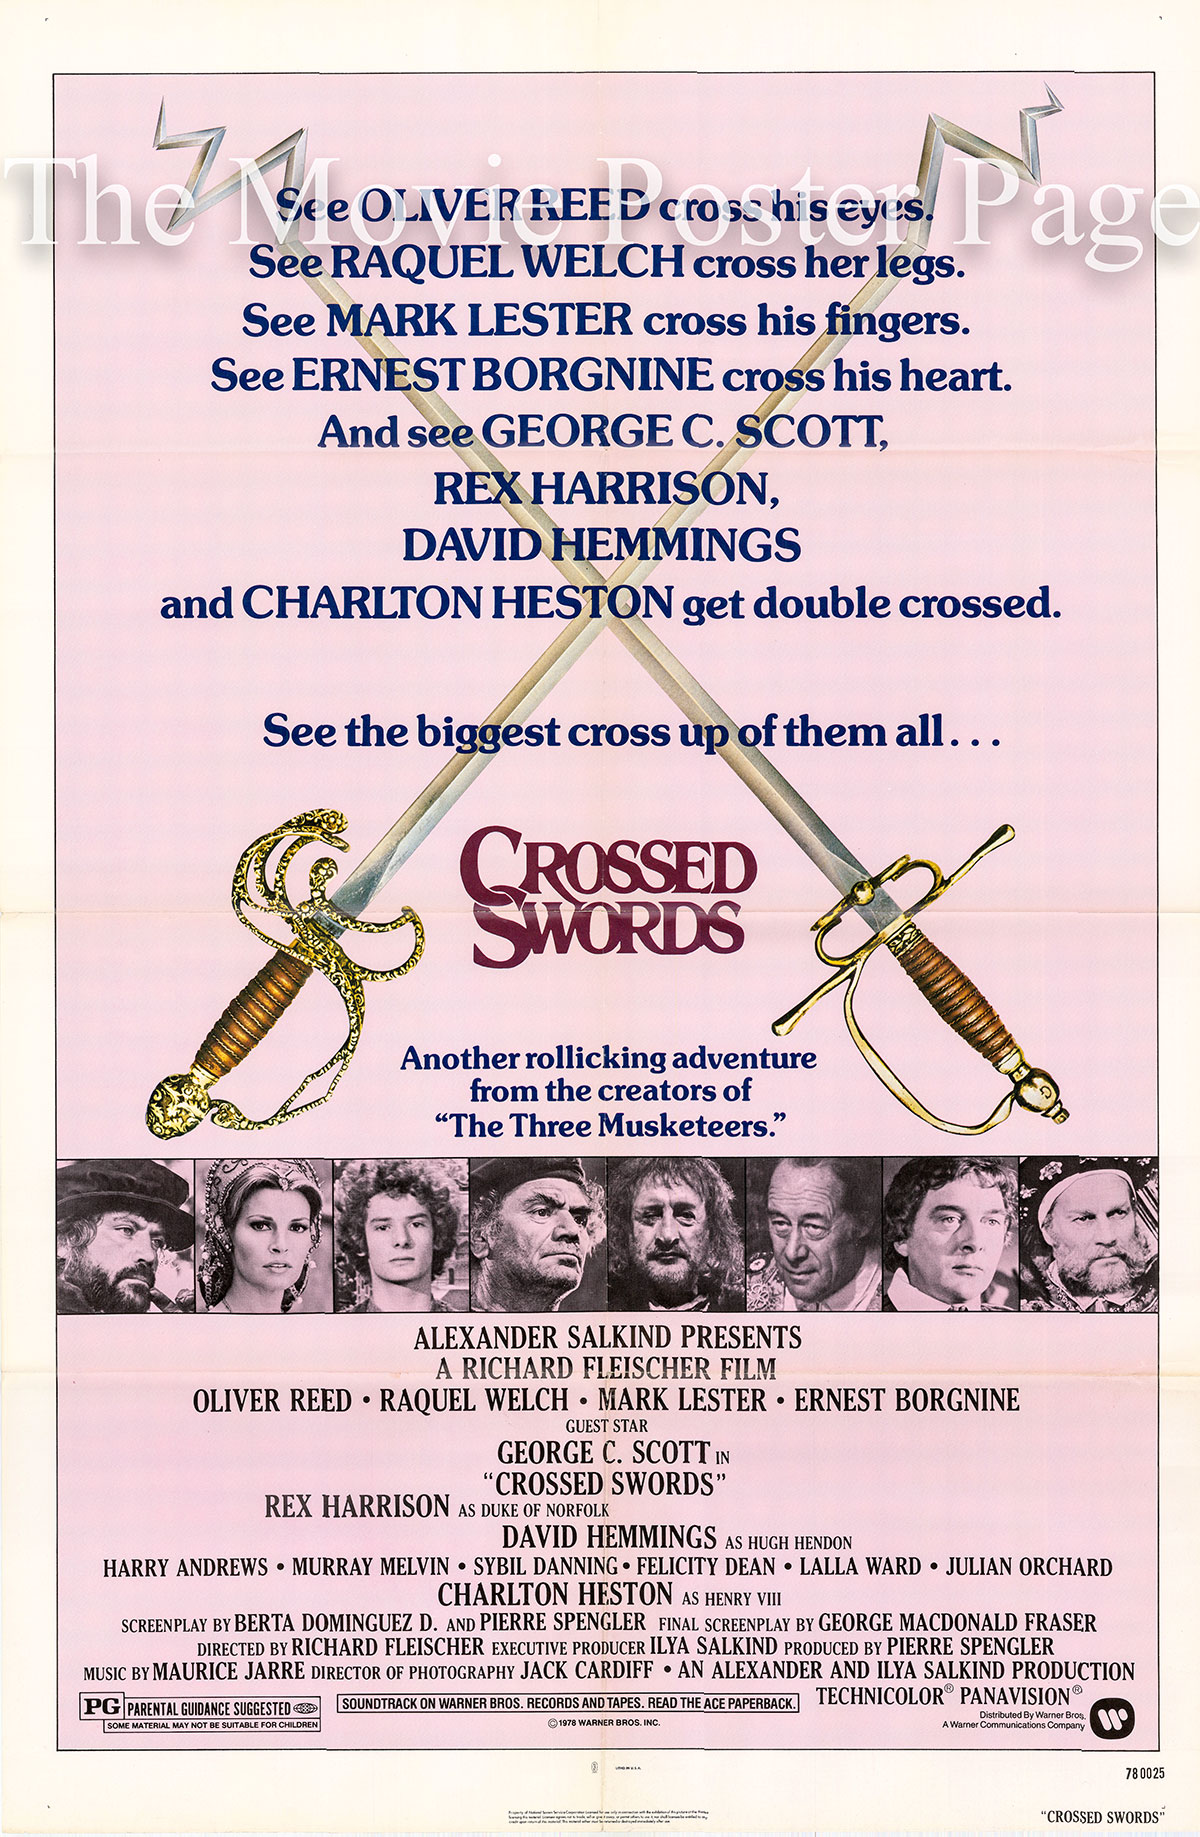 Pictured is a US promotional poster for the Richard Fleischer film Crossed Swords starring Oliver Reed.